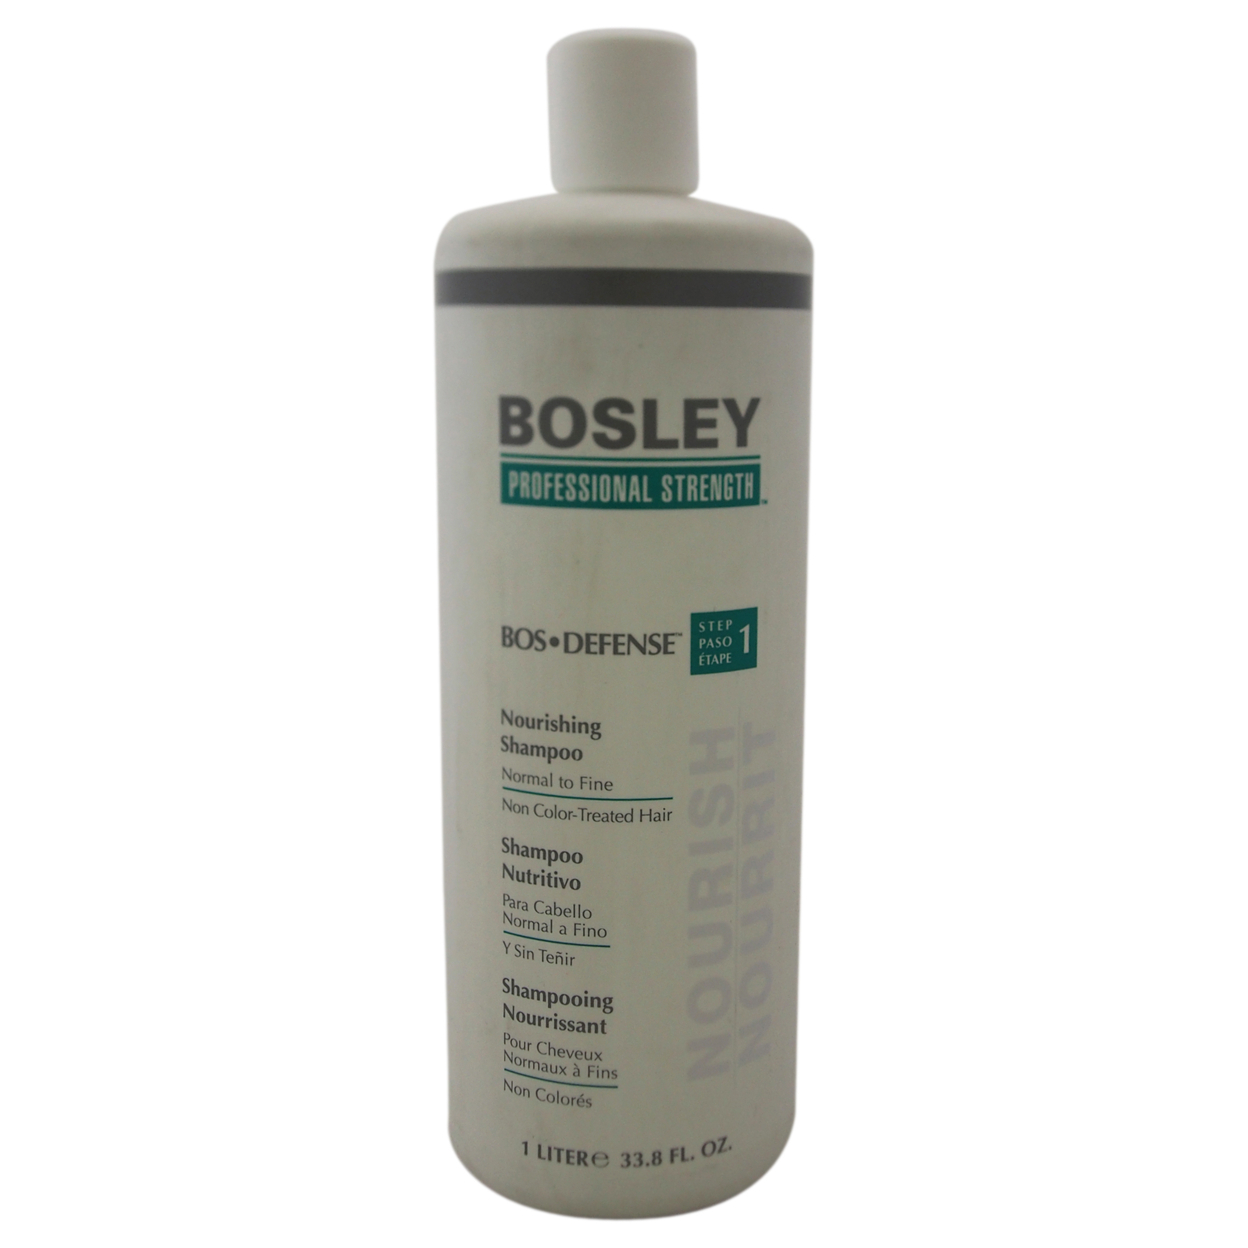 Bos-Defense Nourishing Shampoo for Normal To Fine Non Color-Treated Hair by Bosley for Unisex - 33.8 oz Shampoo 583c6c19e2246159f25a4119